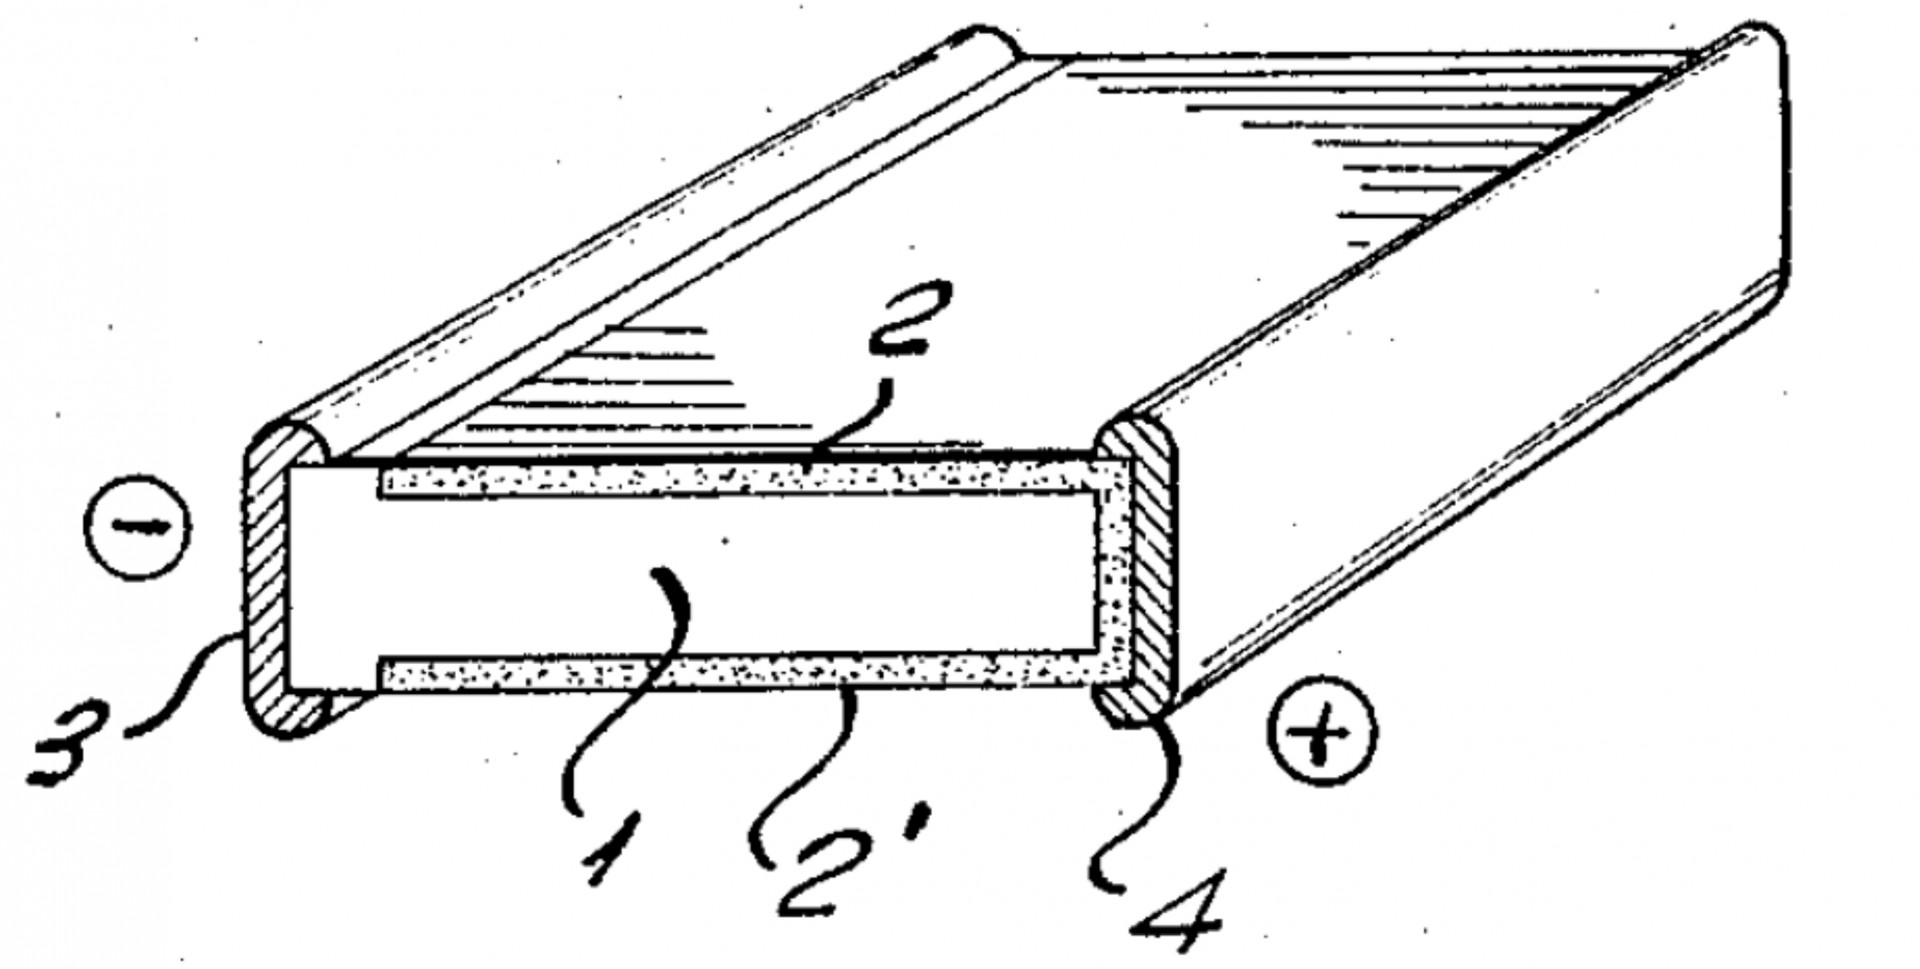 Figure 2. Double junction bifacial cell from a 1960 patent by H. Mori from Sharp (Japan). 1: n-type silicon, 2 and 2': p-type emitter regions